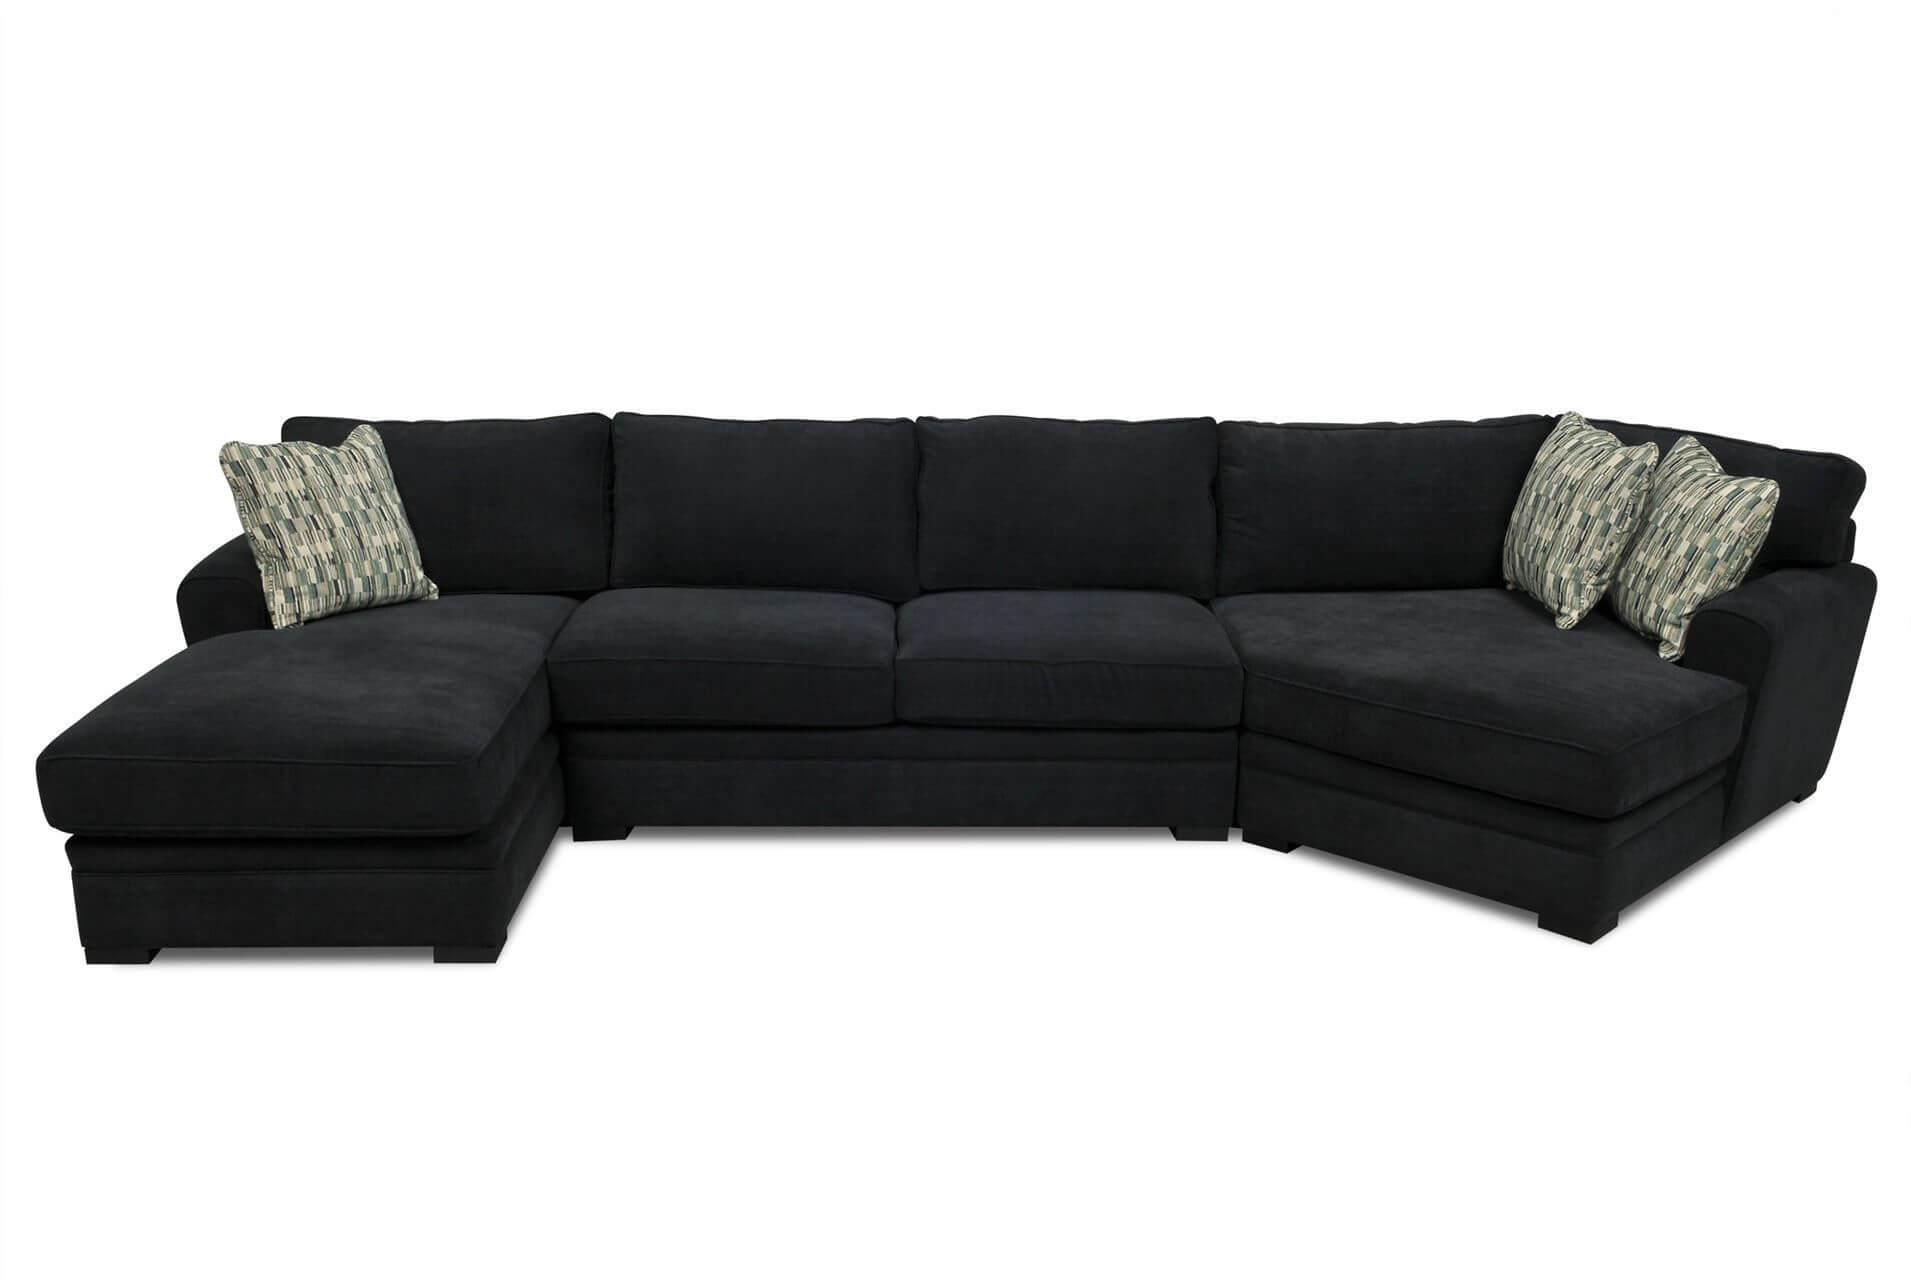 top traditional sectional sofas design-Modern Traditional Sectional sofas Image